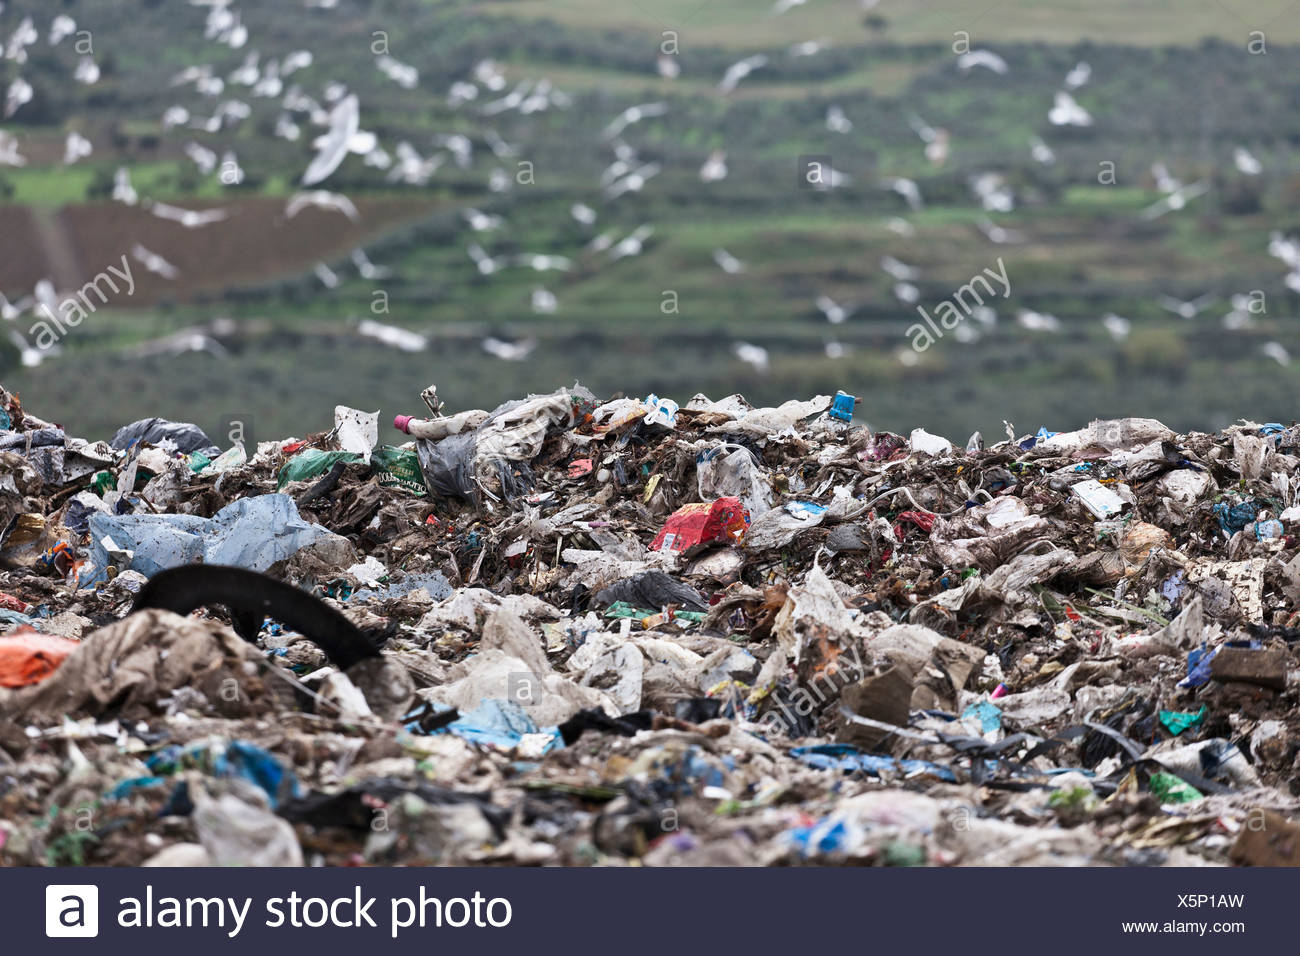 Landfill at garbage collection center Stock Photo